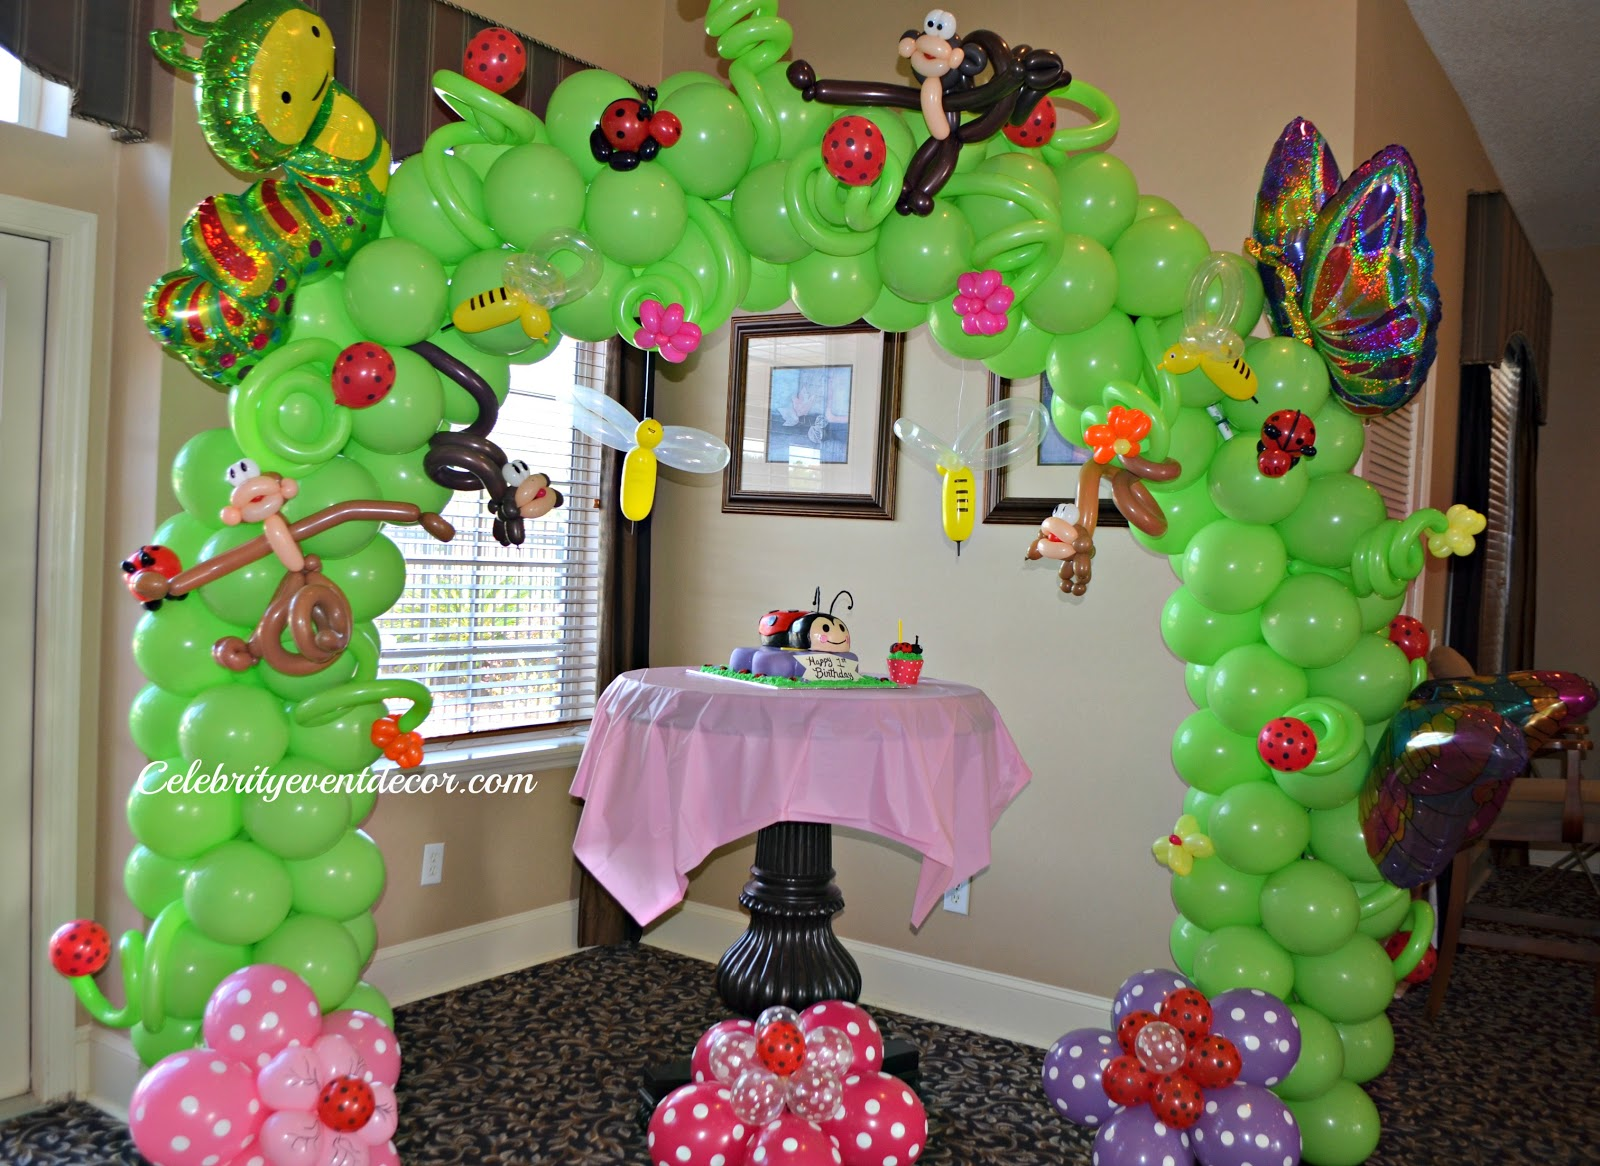 Ladybug balloon decorations 1st birthday images frompo for Balloon decoration ideas for 1st birthday